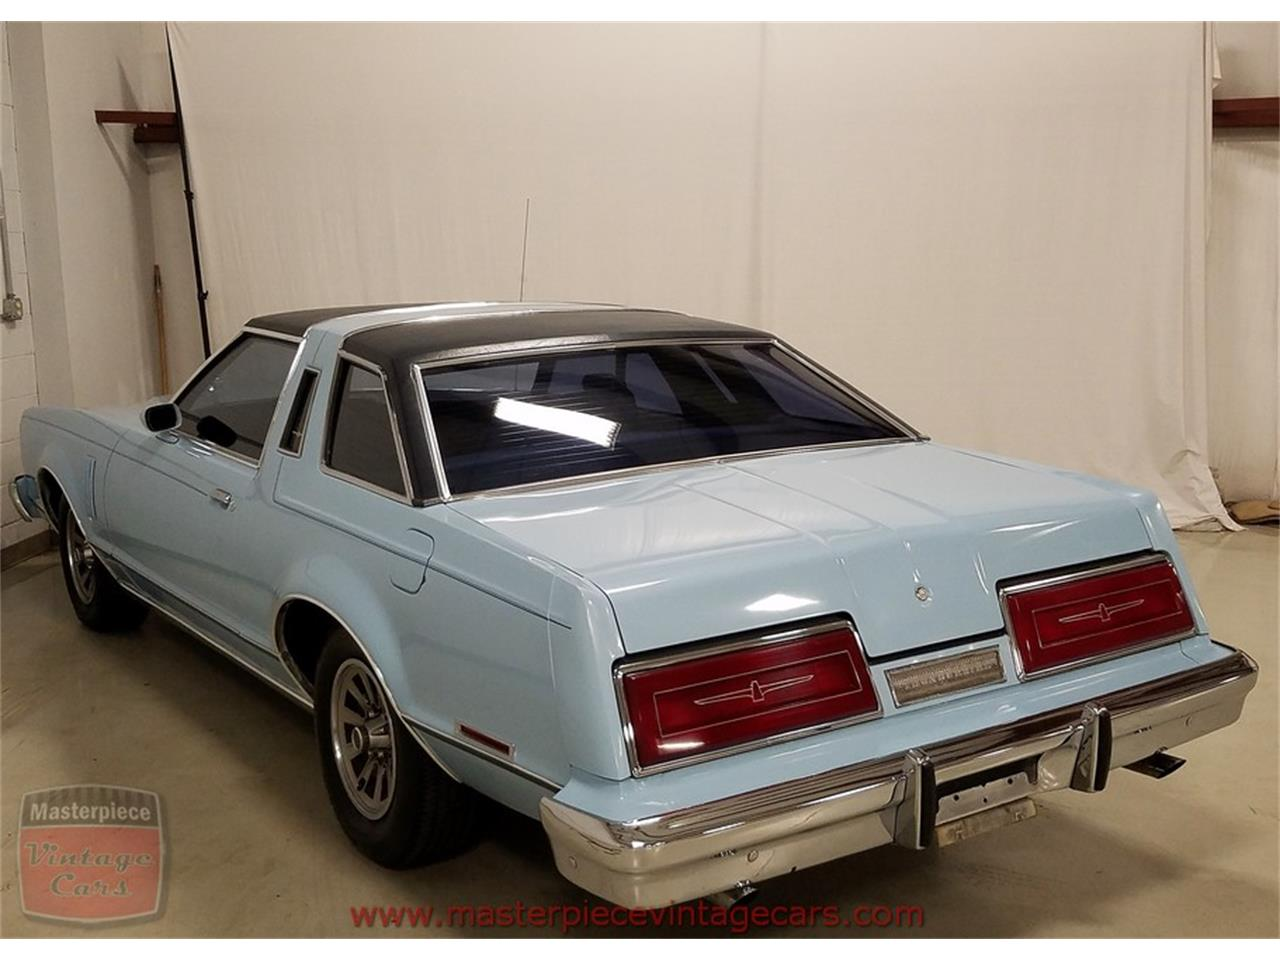 Large Picture of '79 Thunderbird - $6,950.00 Offered by Masterpiece Vintage Cars - KV4O